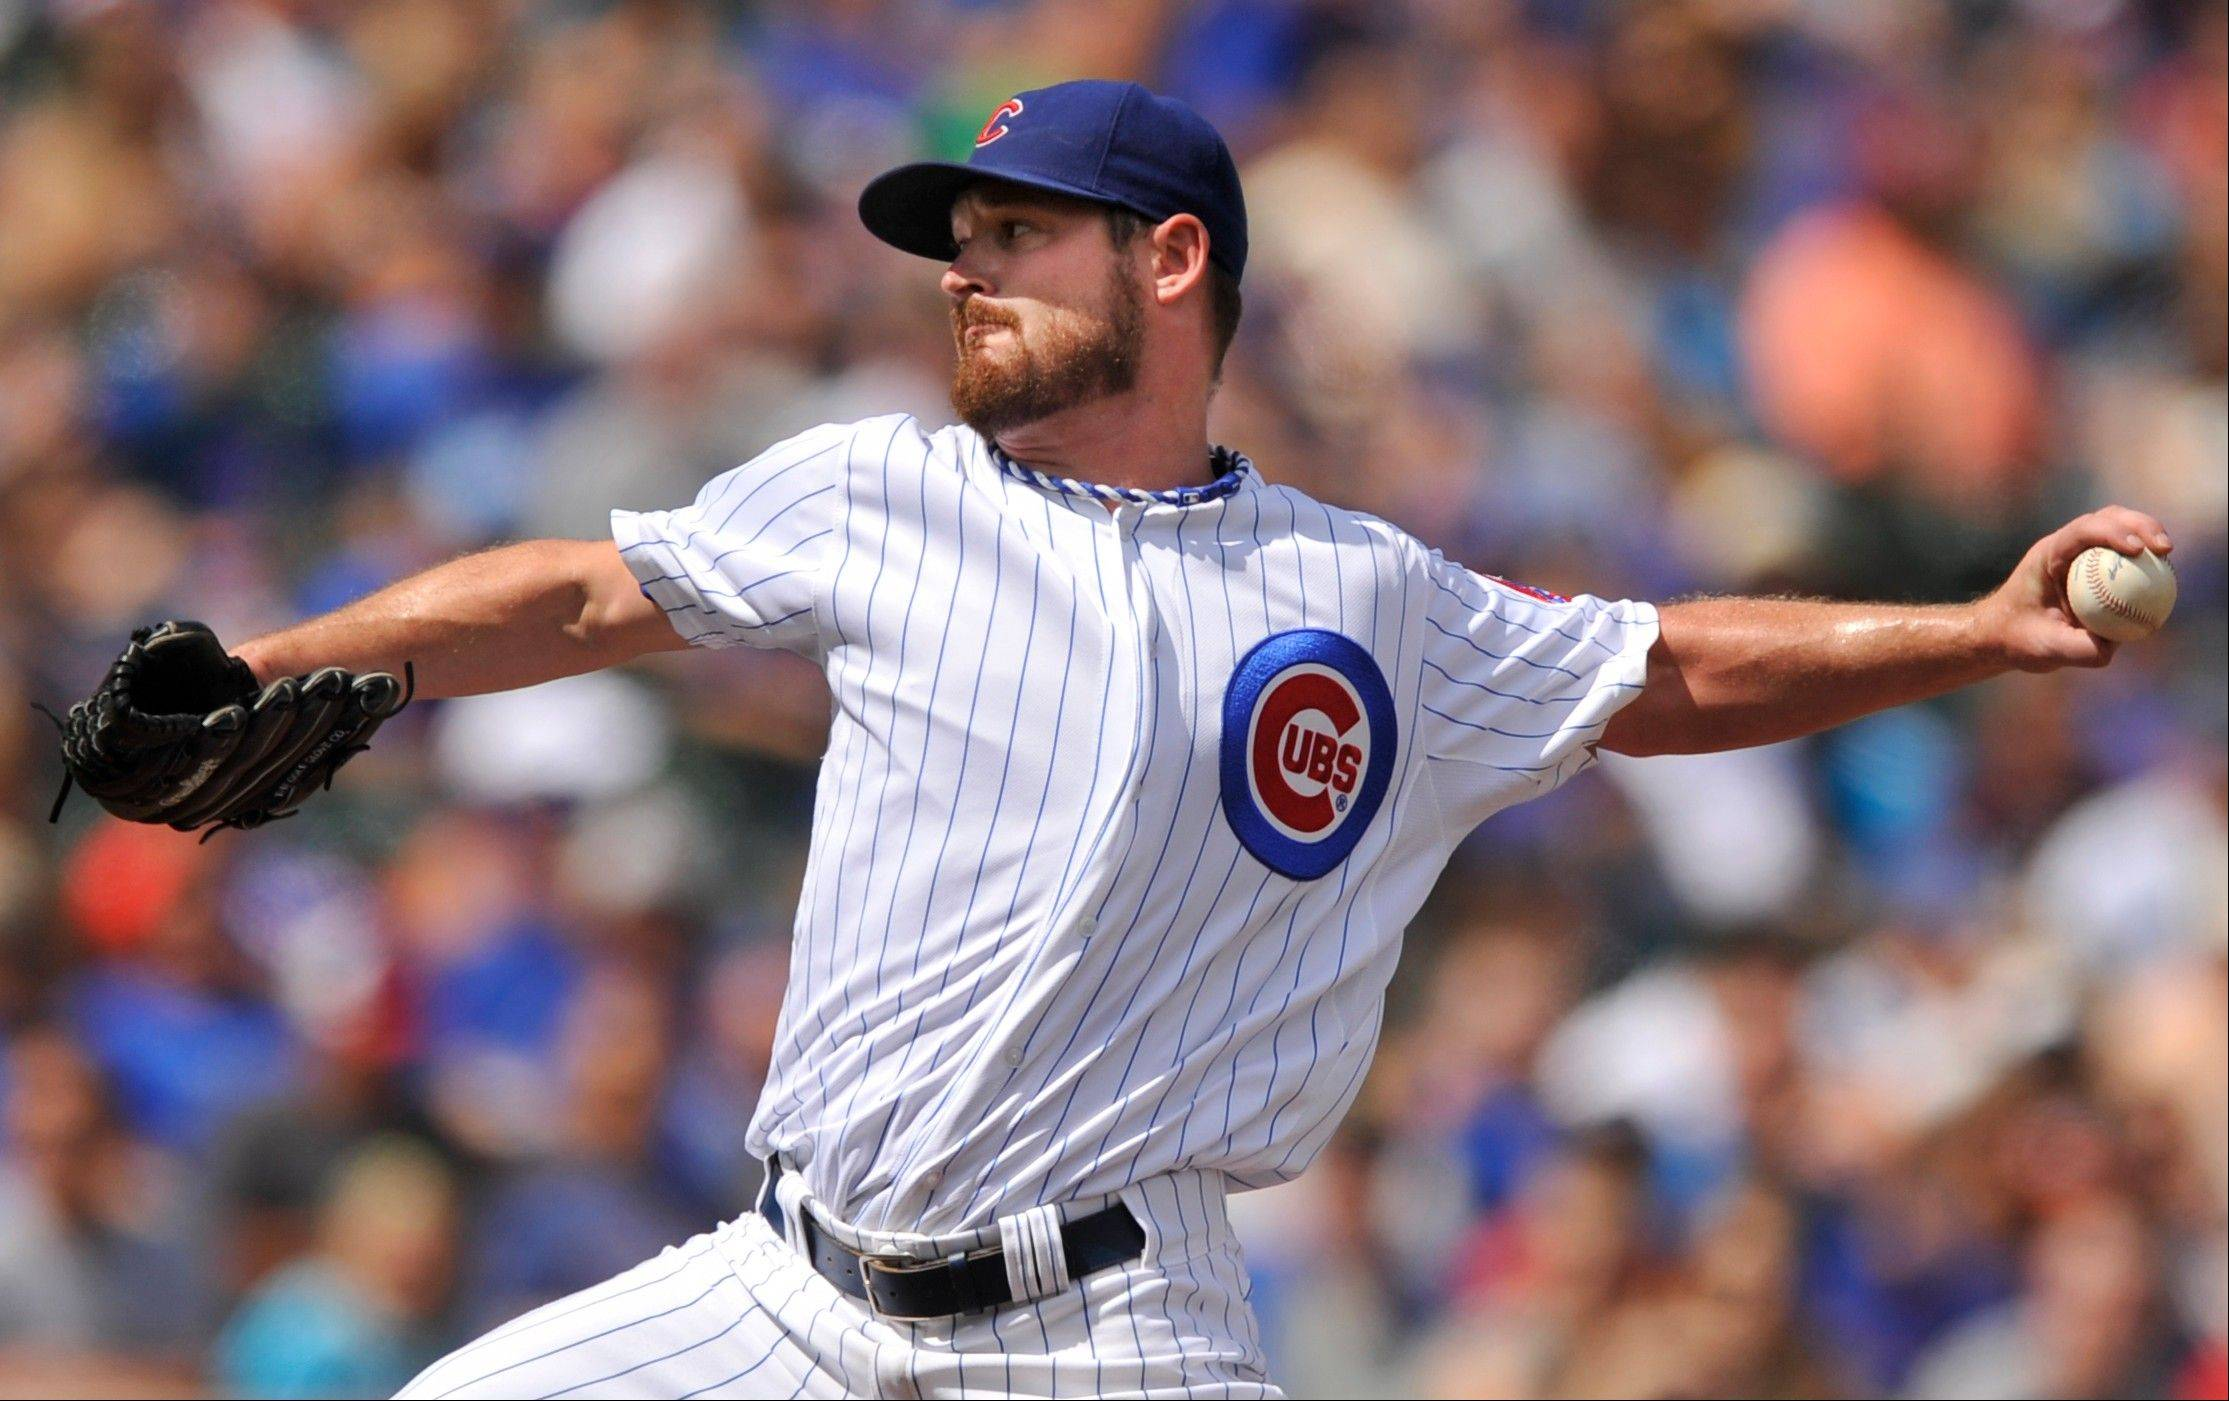 The Cubs and starter Travis Wood have agreed to a one-year contract worth $3.9 million for next season.